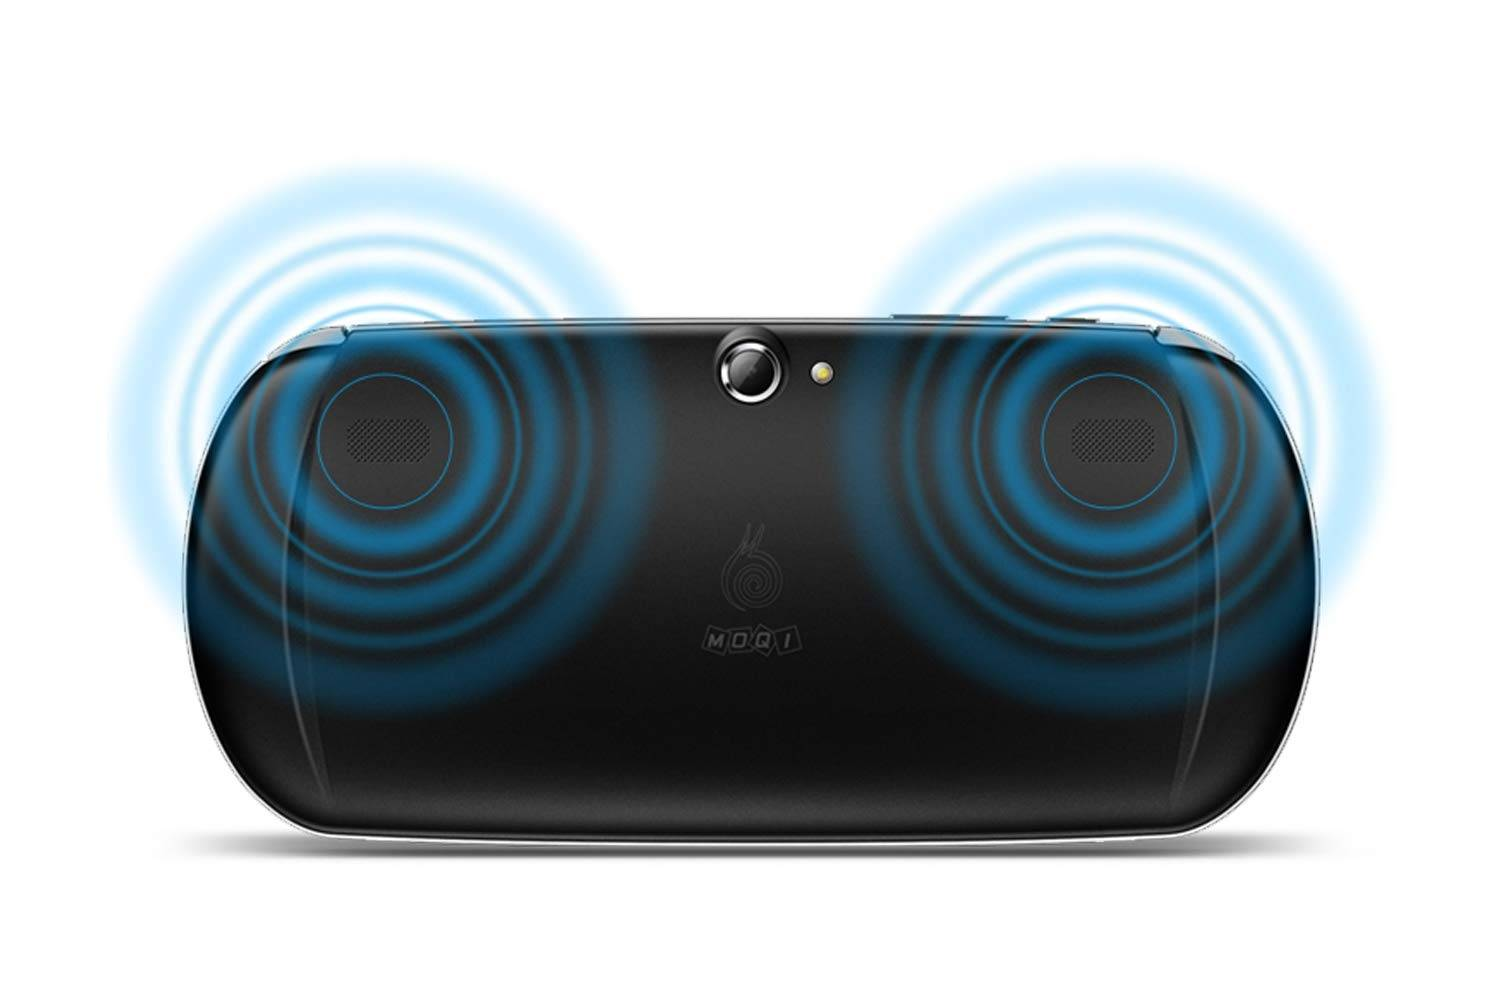 MOQi I7s Android Gaming Smartphone - Rear showing Speakers